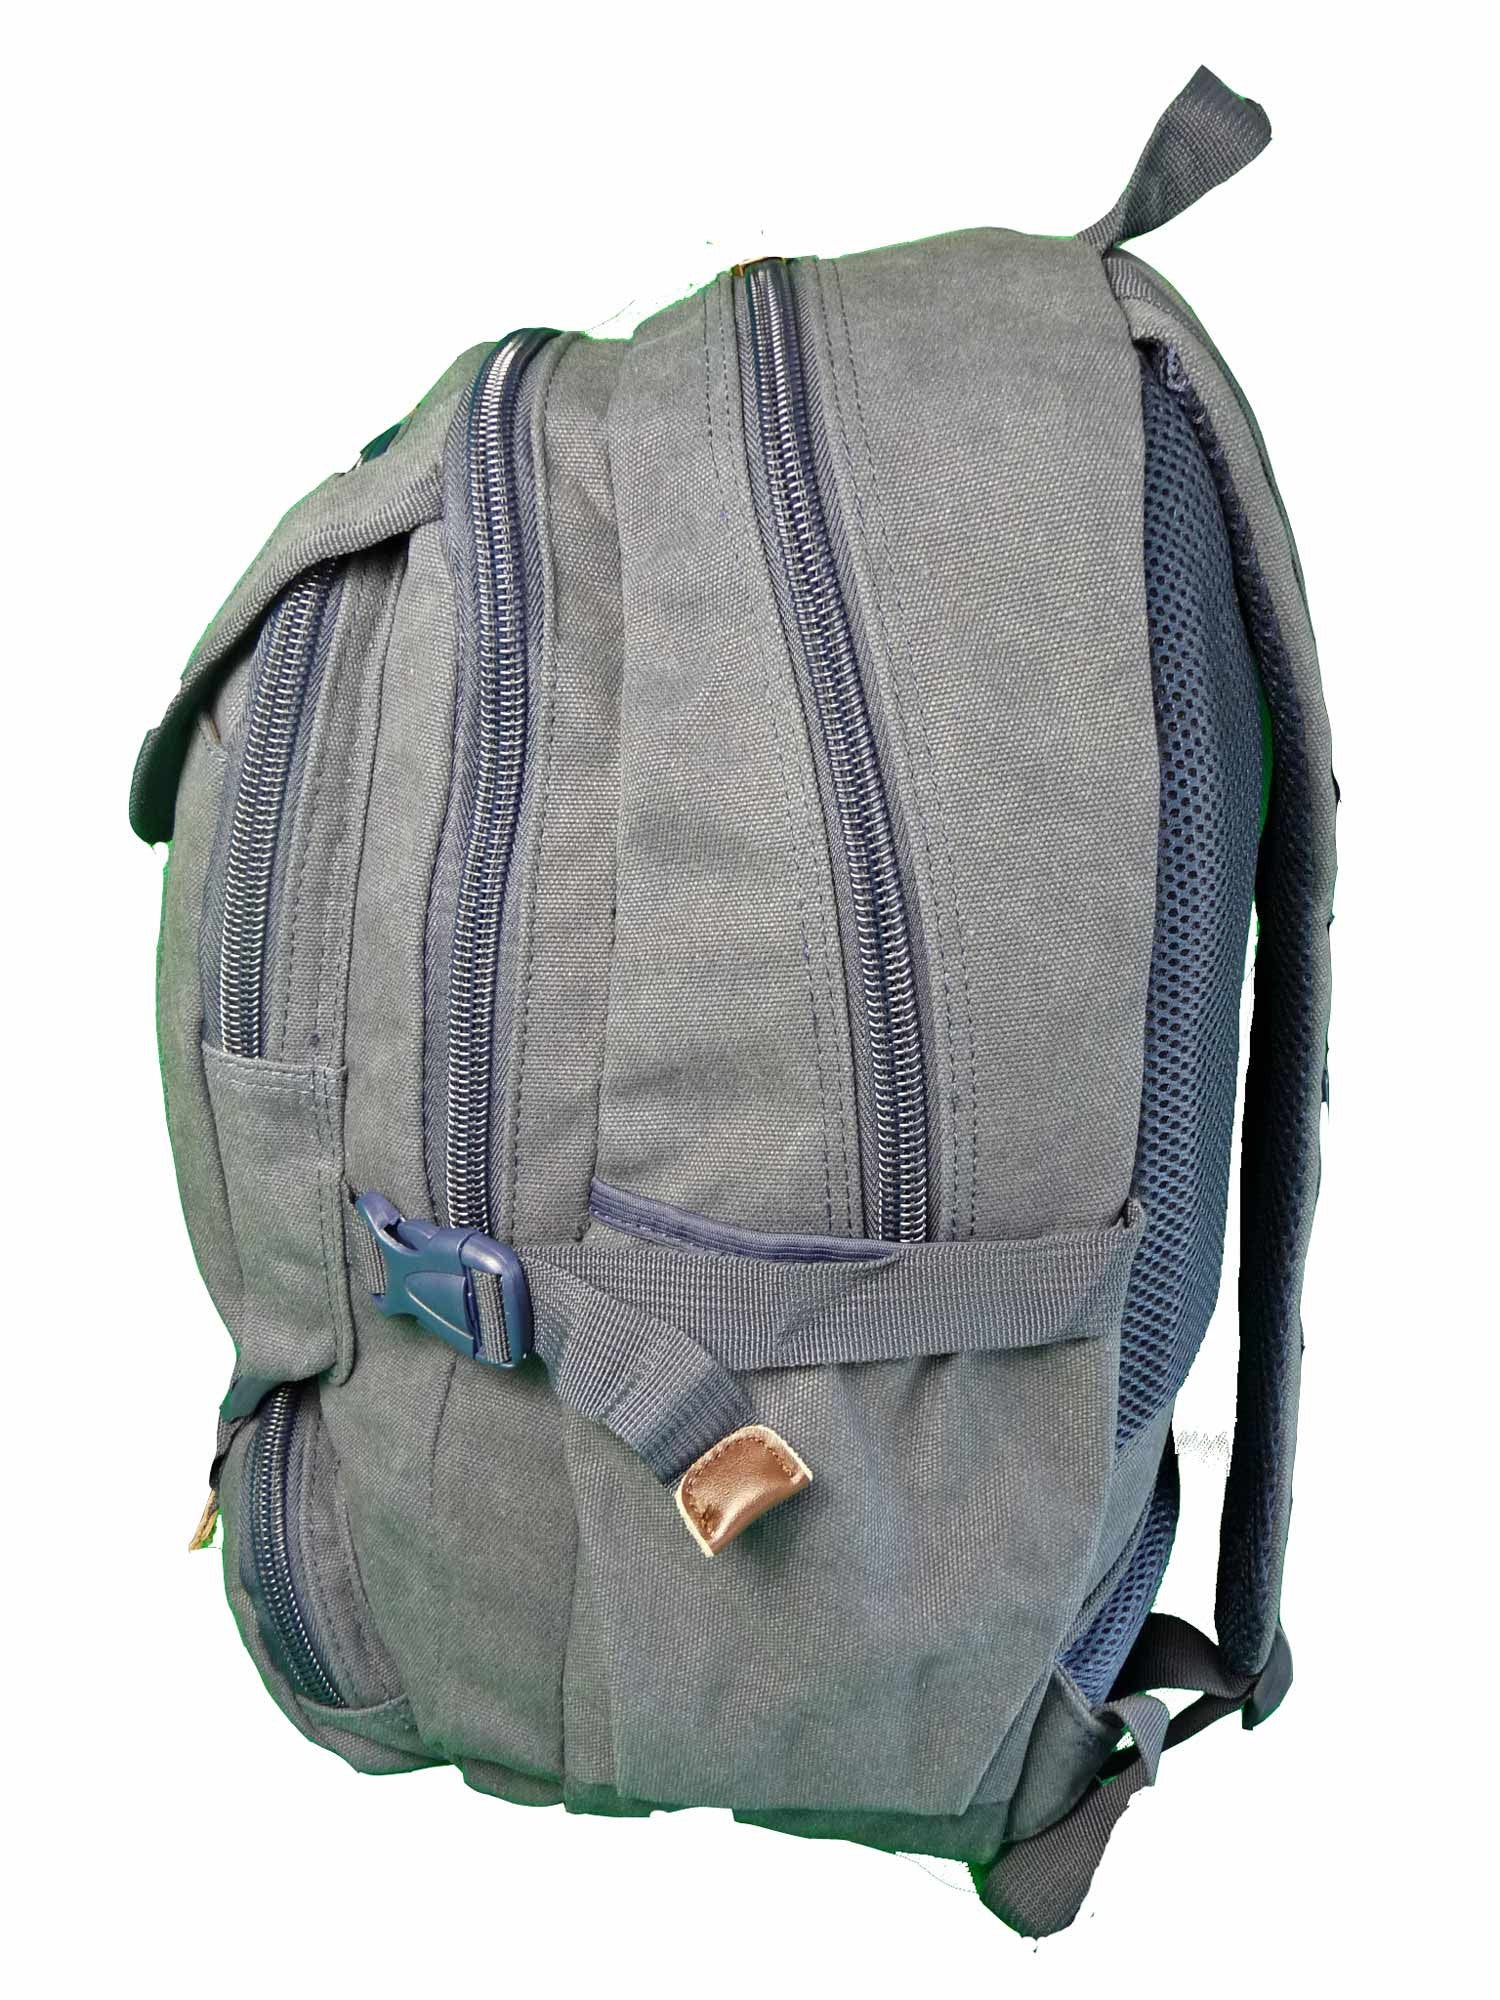 MacBook Air Backpack Rucksack Bag RL25N side side view